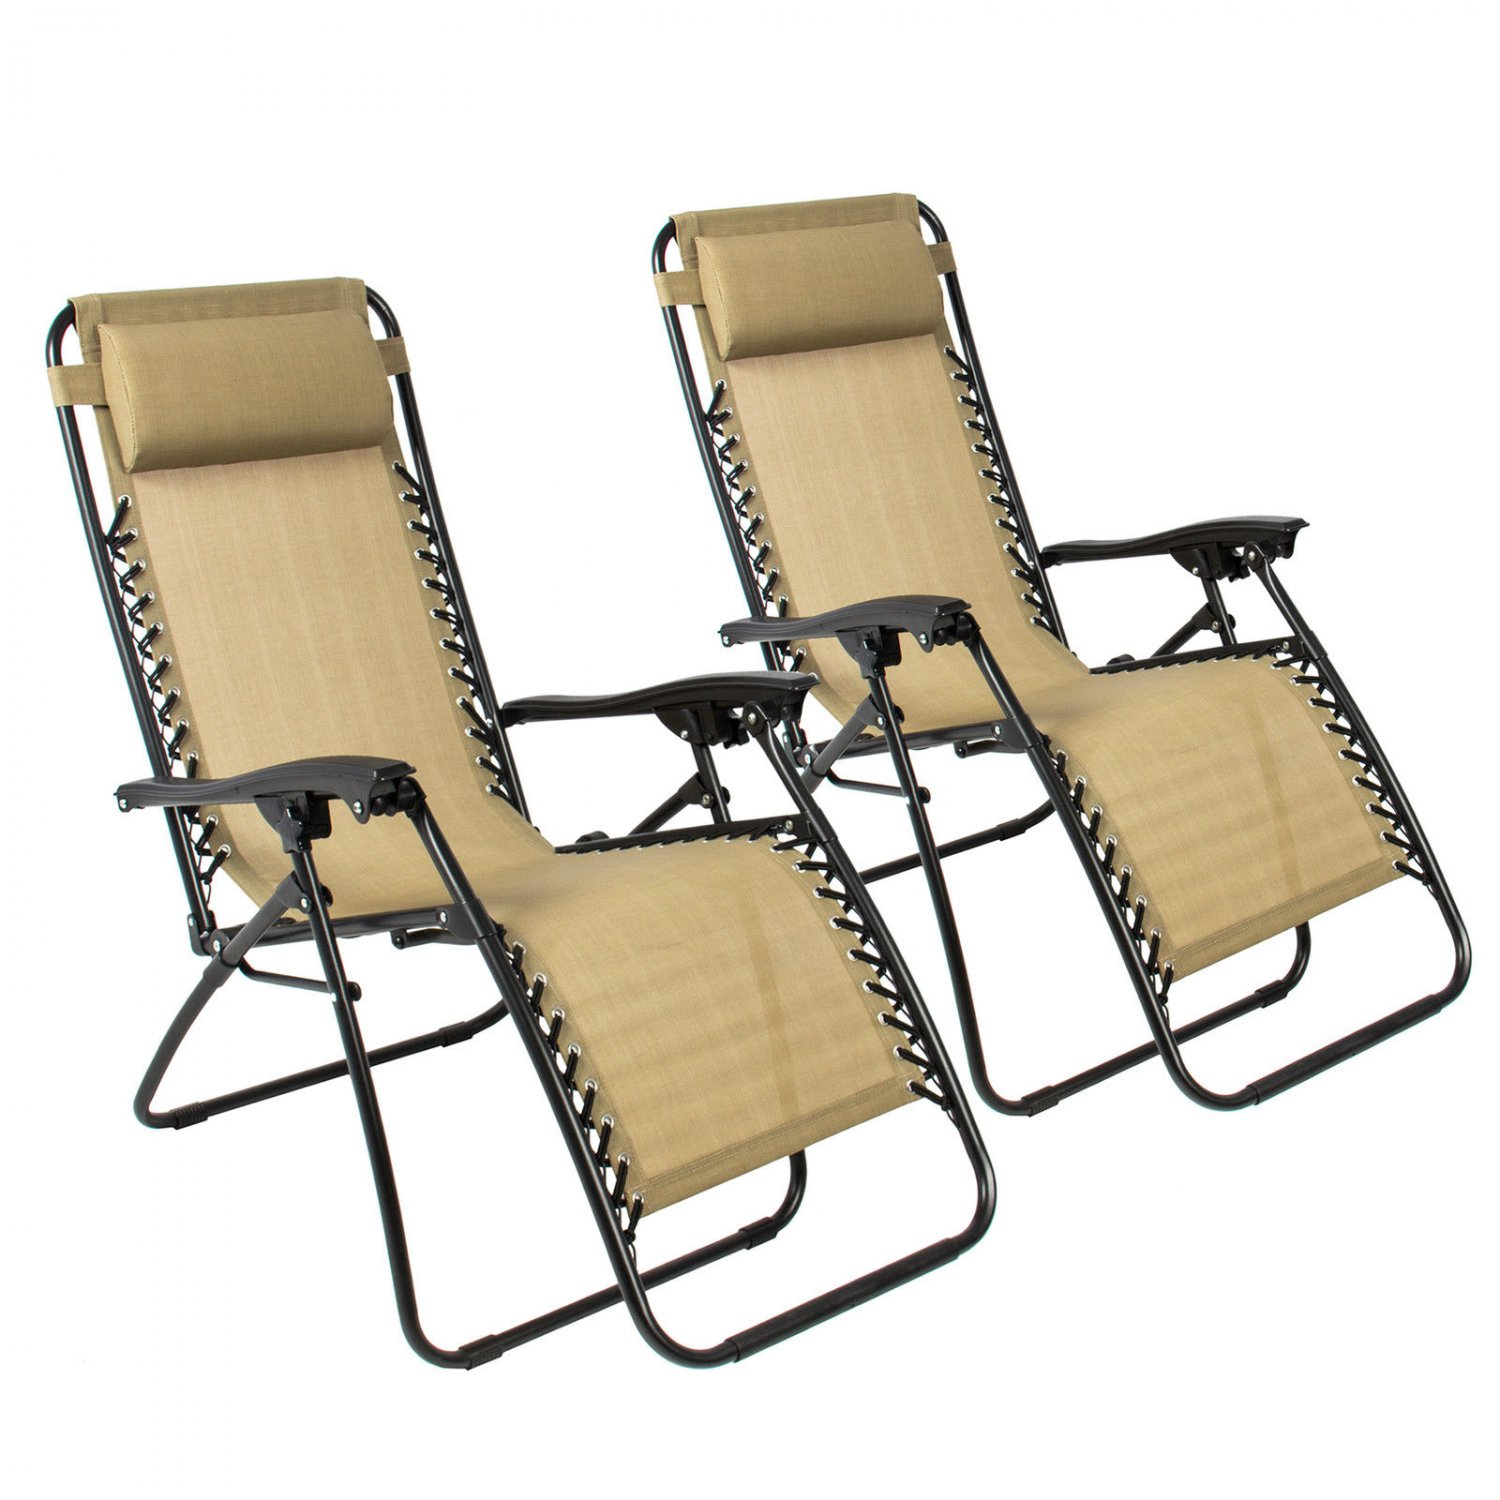 zero gravity office chair uk covers for sale new chairs case of 2 tan lounge patio